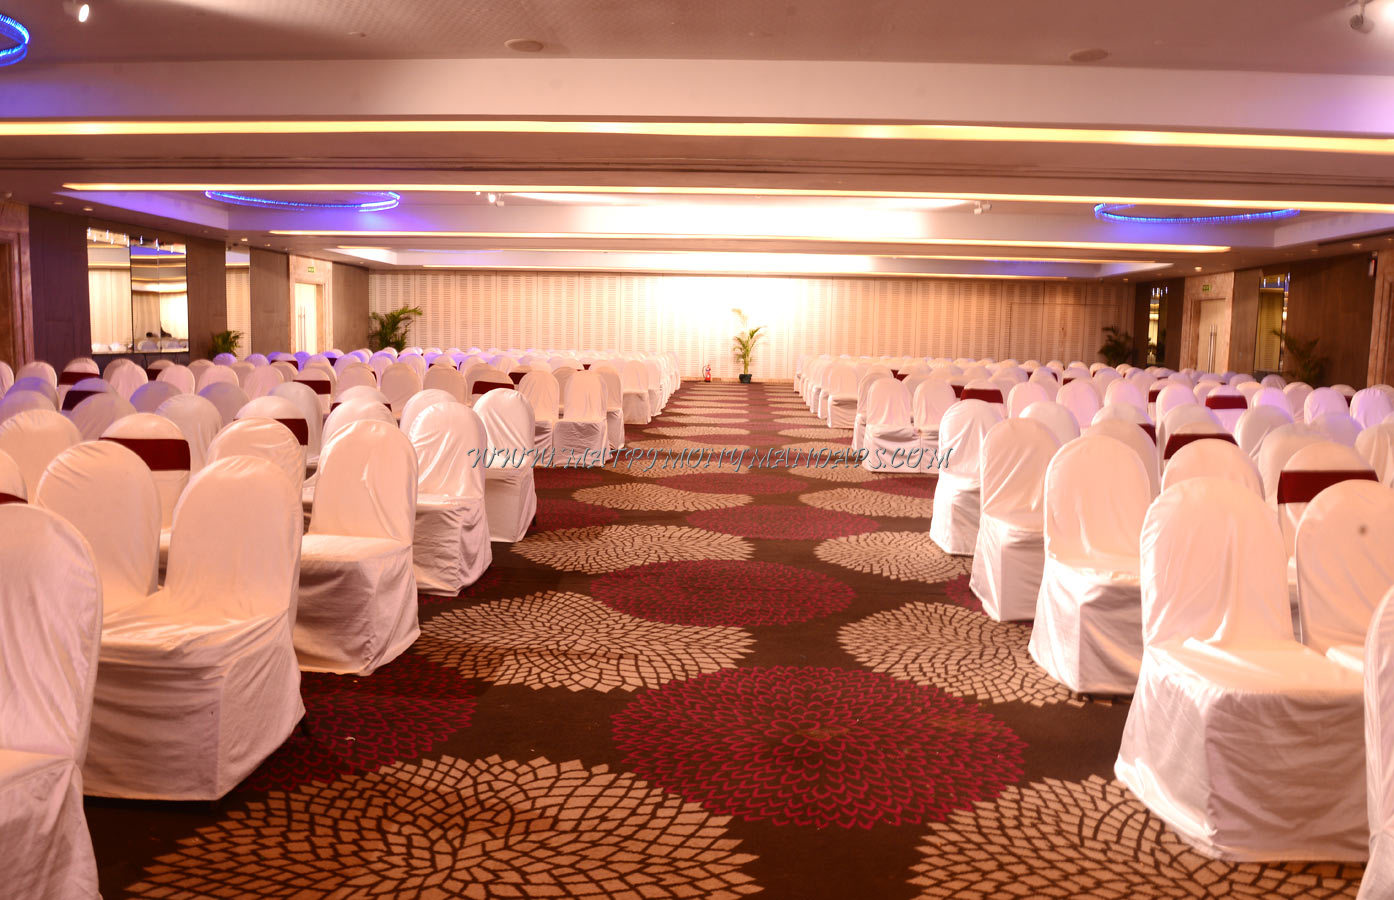 Find the availability of the Grand Madras Ballroom Le Royal Meridien (A/C) in Guindy, Chennai and avail special offers